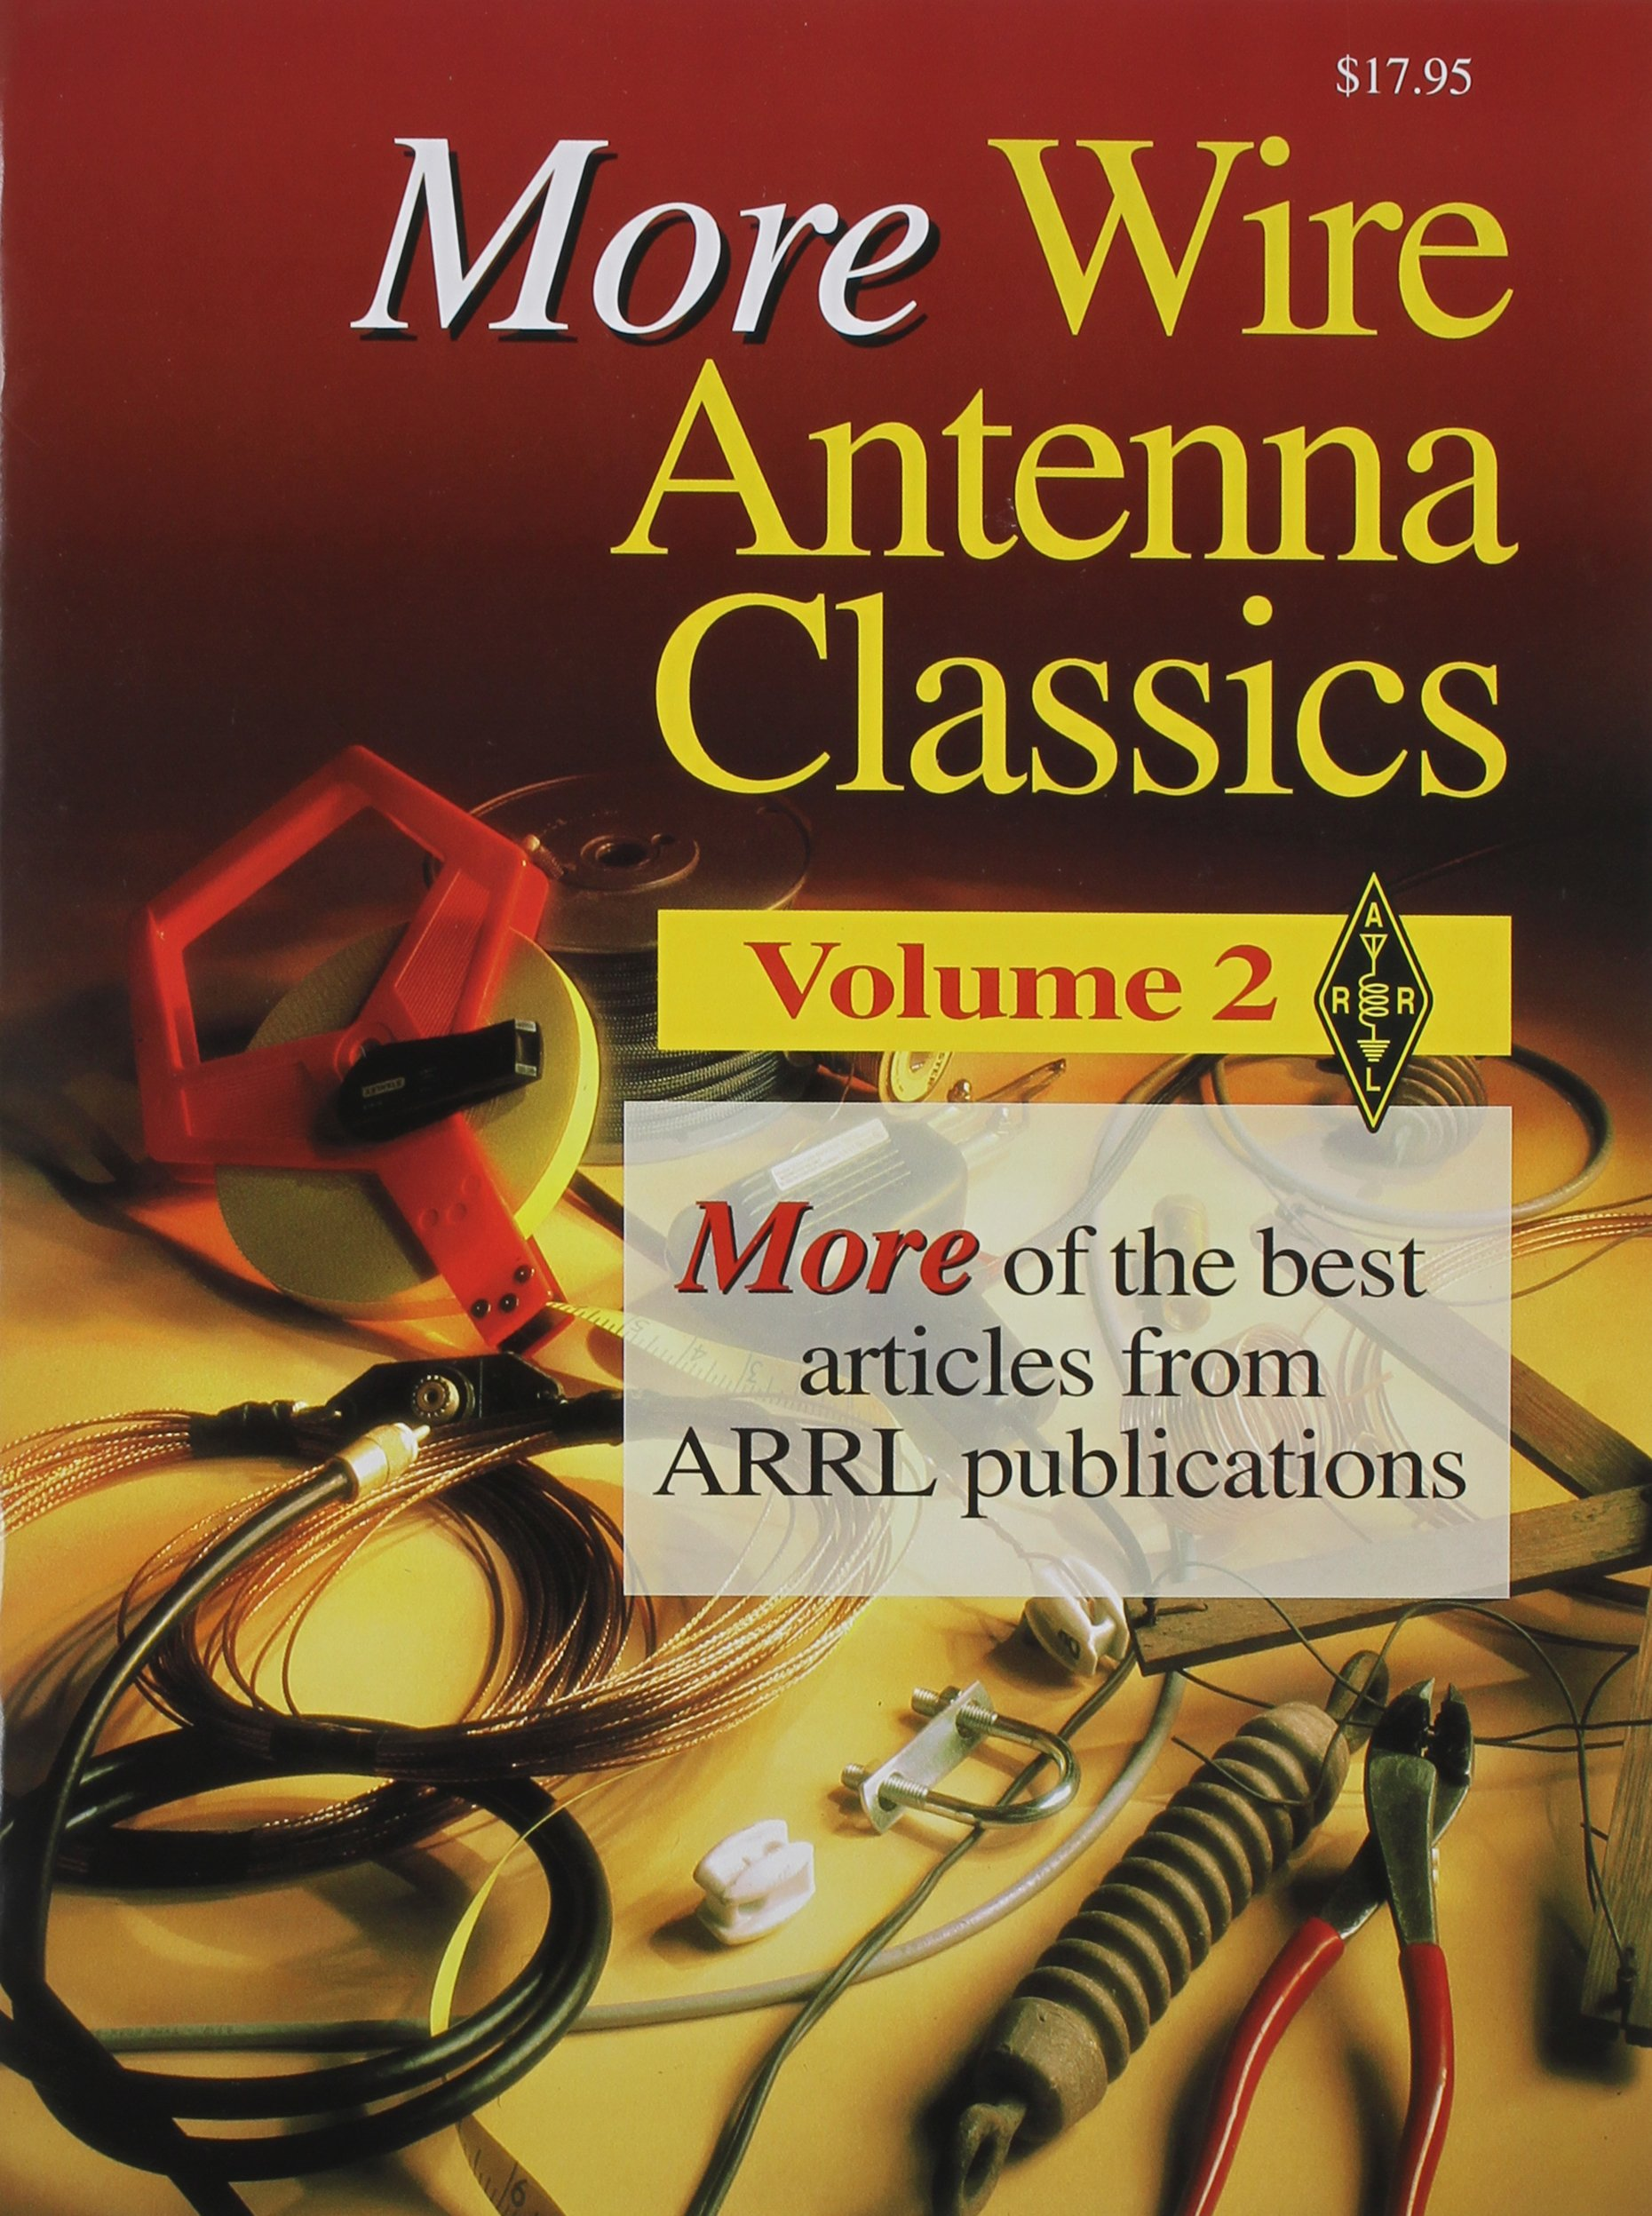 More Wire Antenna Classics - Vol. 2